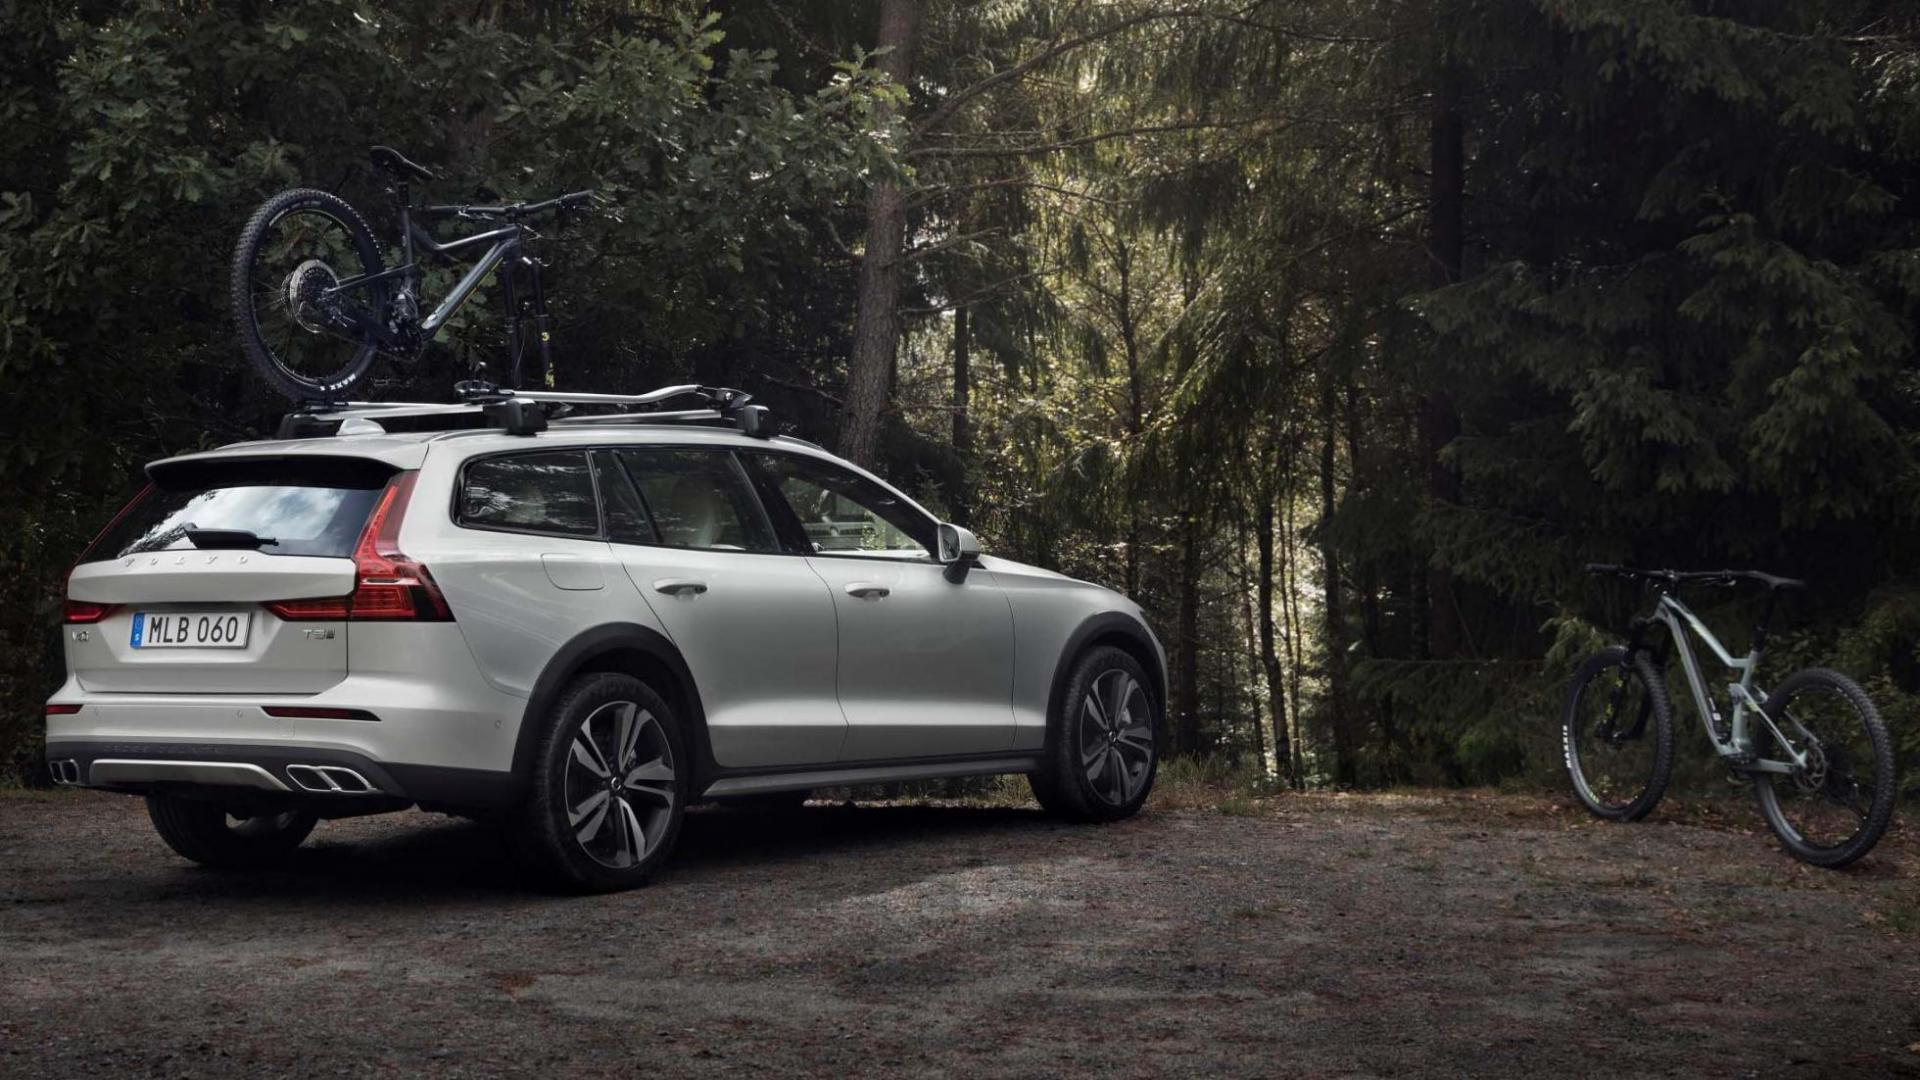 Volvo V60 Cross Country fiets bos